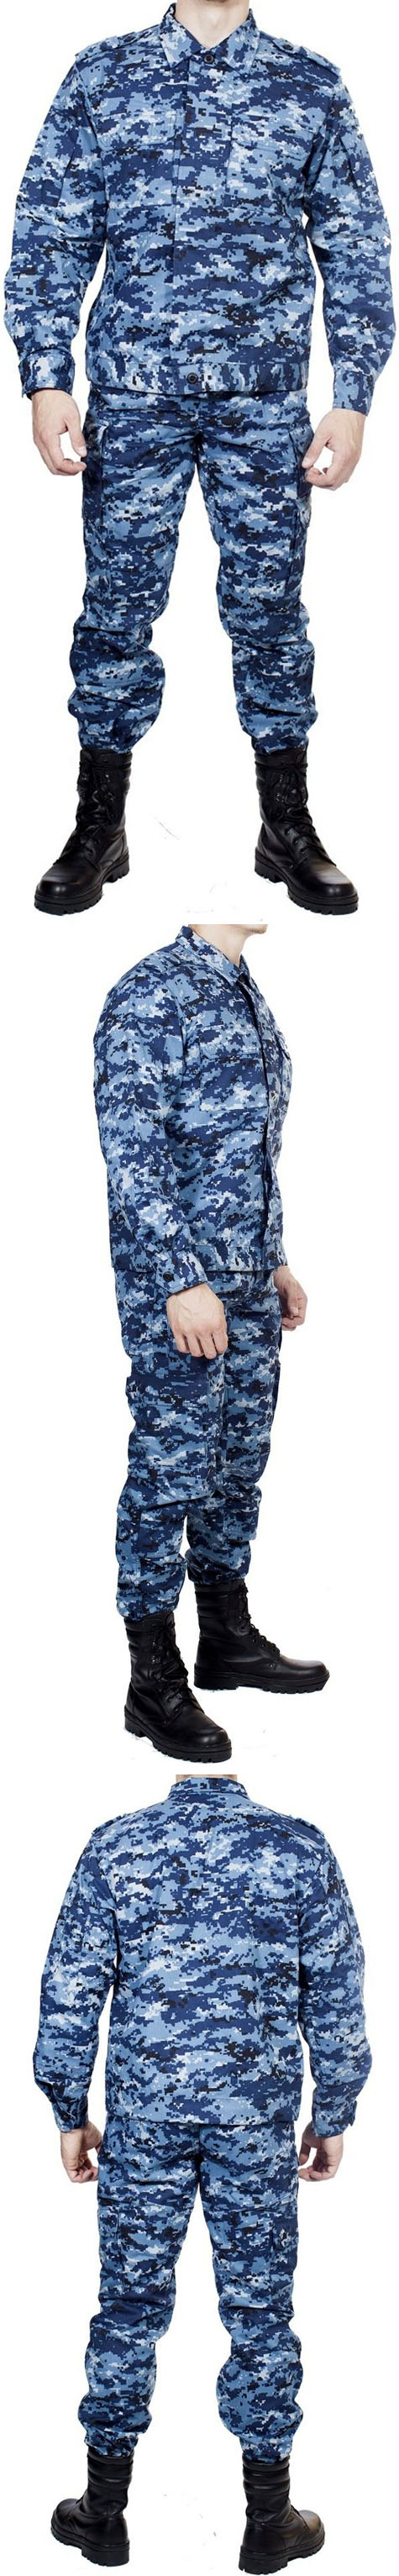 Russian Spetsnaz tactical Blue Digital camo uniform